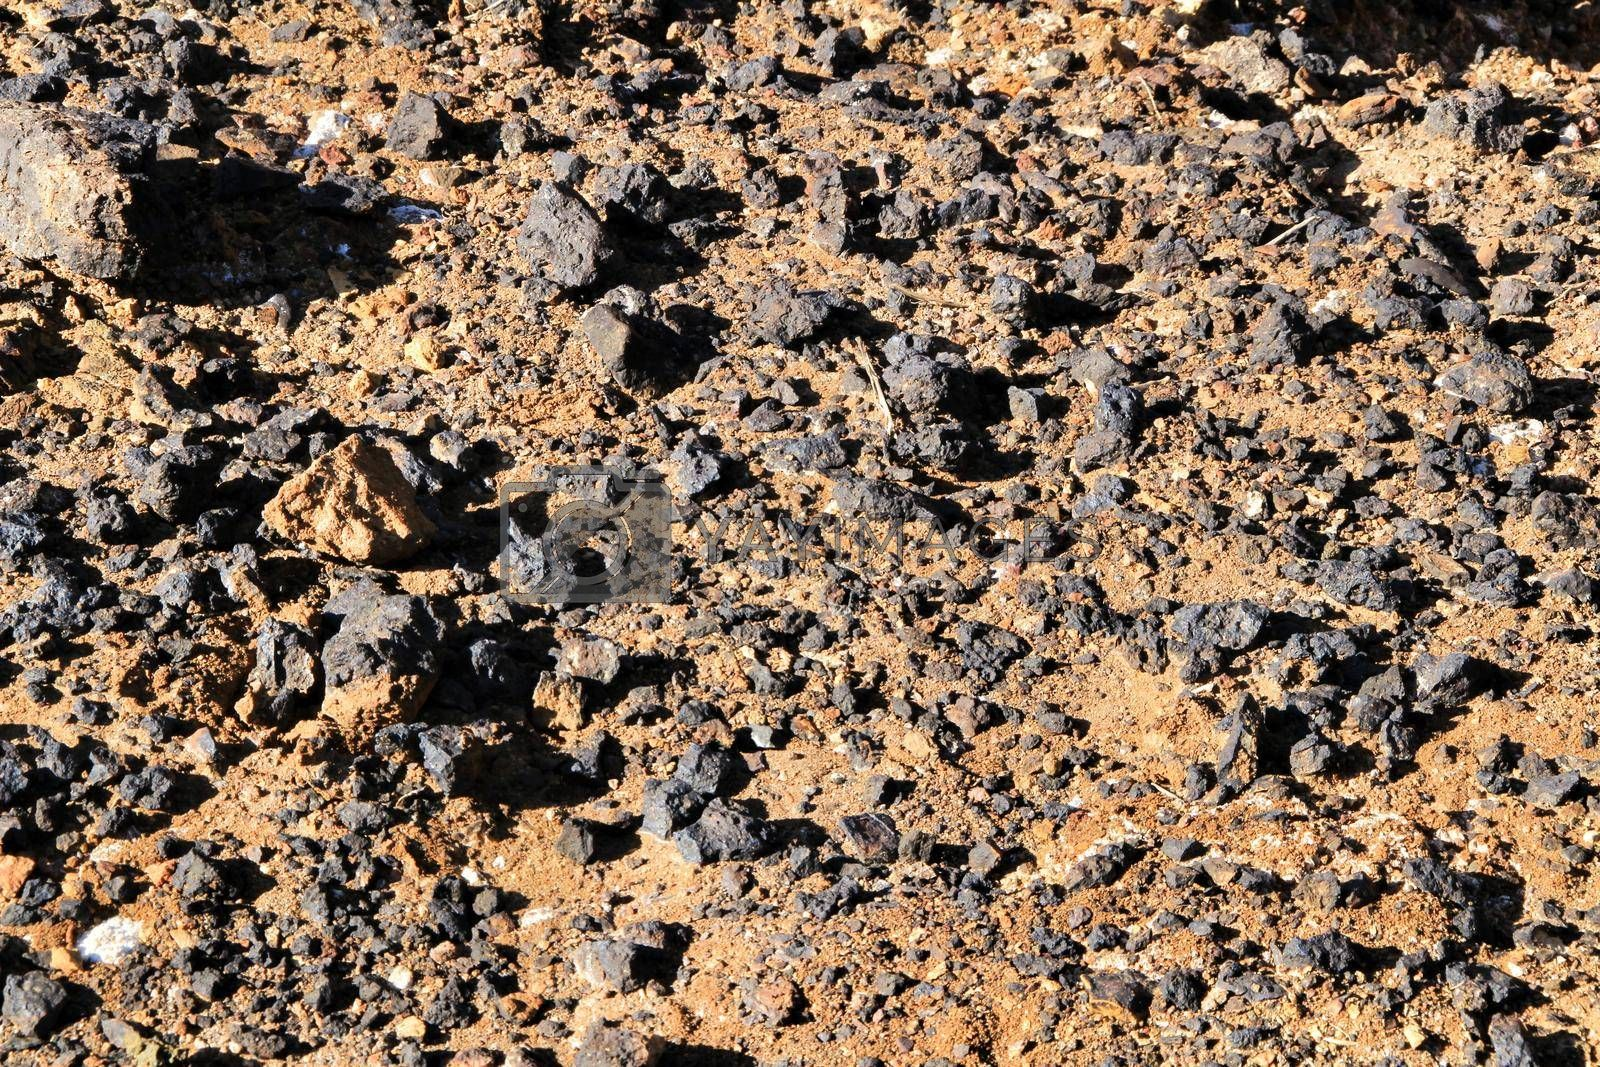 Zinc and lead minerals on the floor of an old abandoned quarry in Mazarron